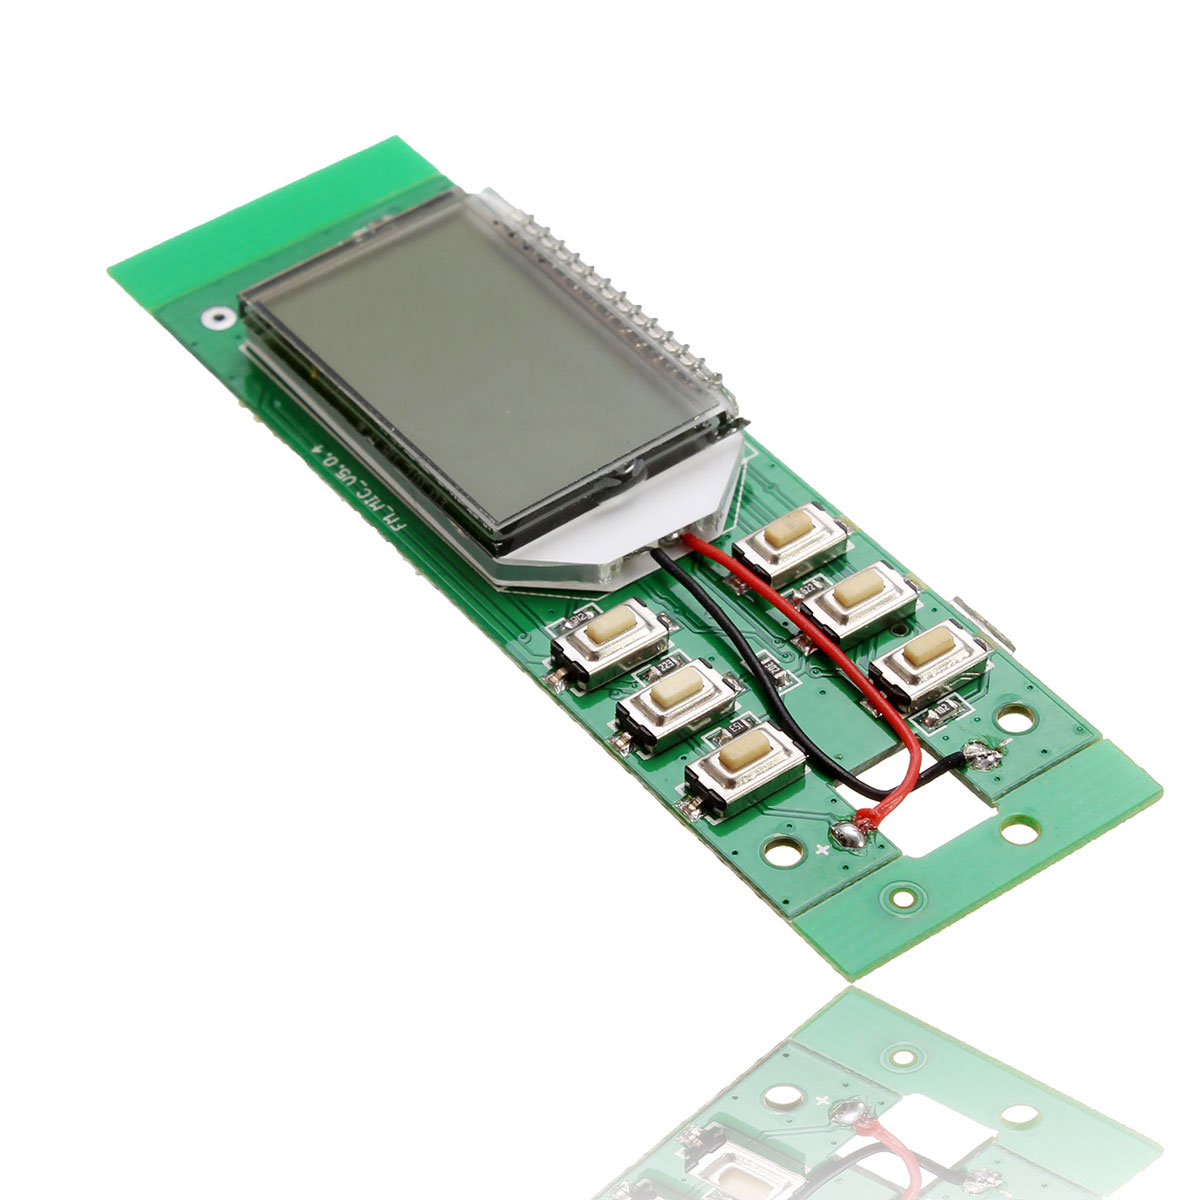 Hot Sale Electric Fm Launch Module Wireless Microphone Circuit Radio Board Computer Audio Transmitter Modules In Demo From Office